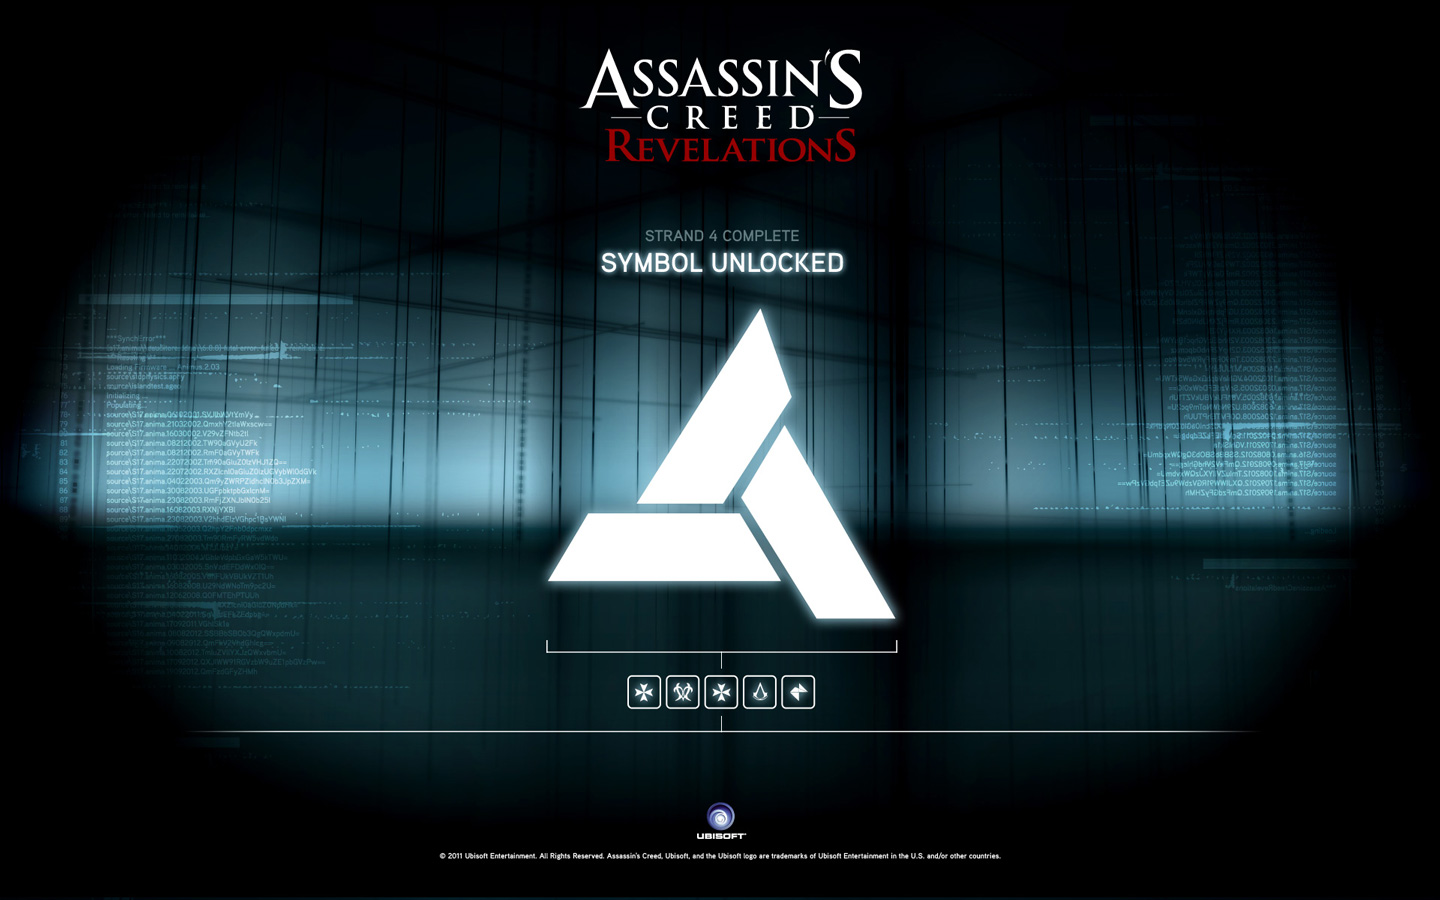 Assassin's Creed: Revelations Wallpaper in 1440x900